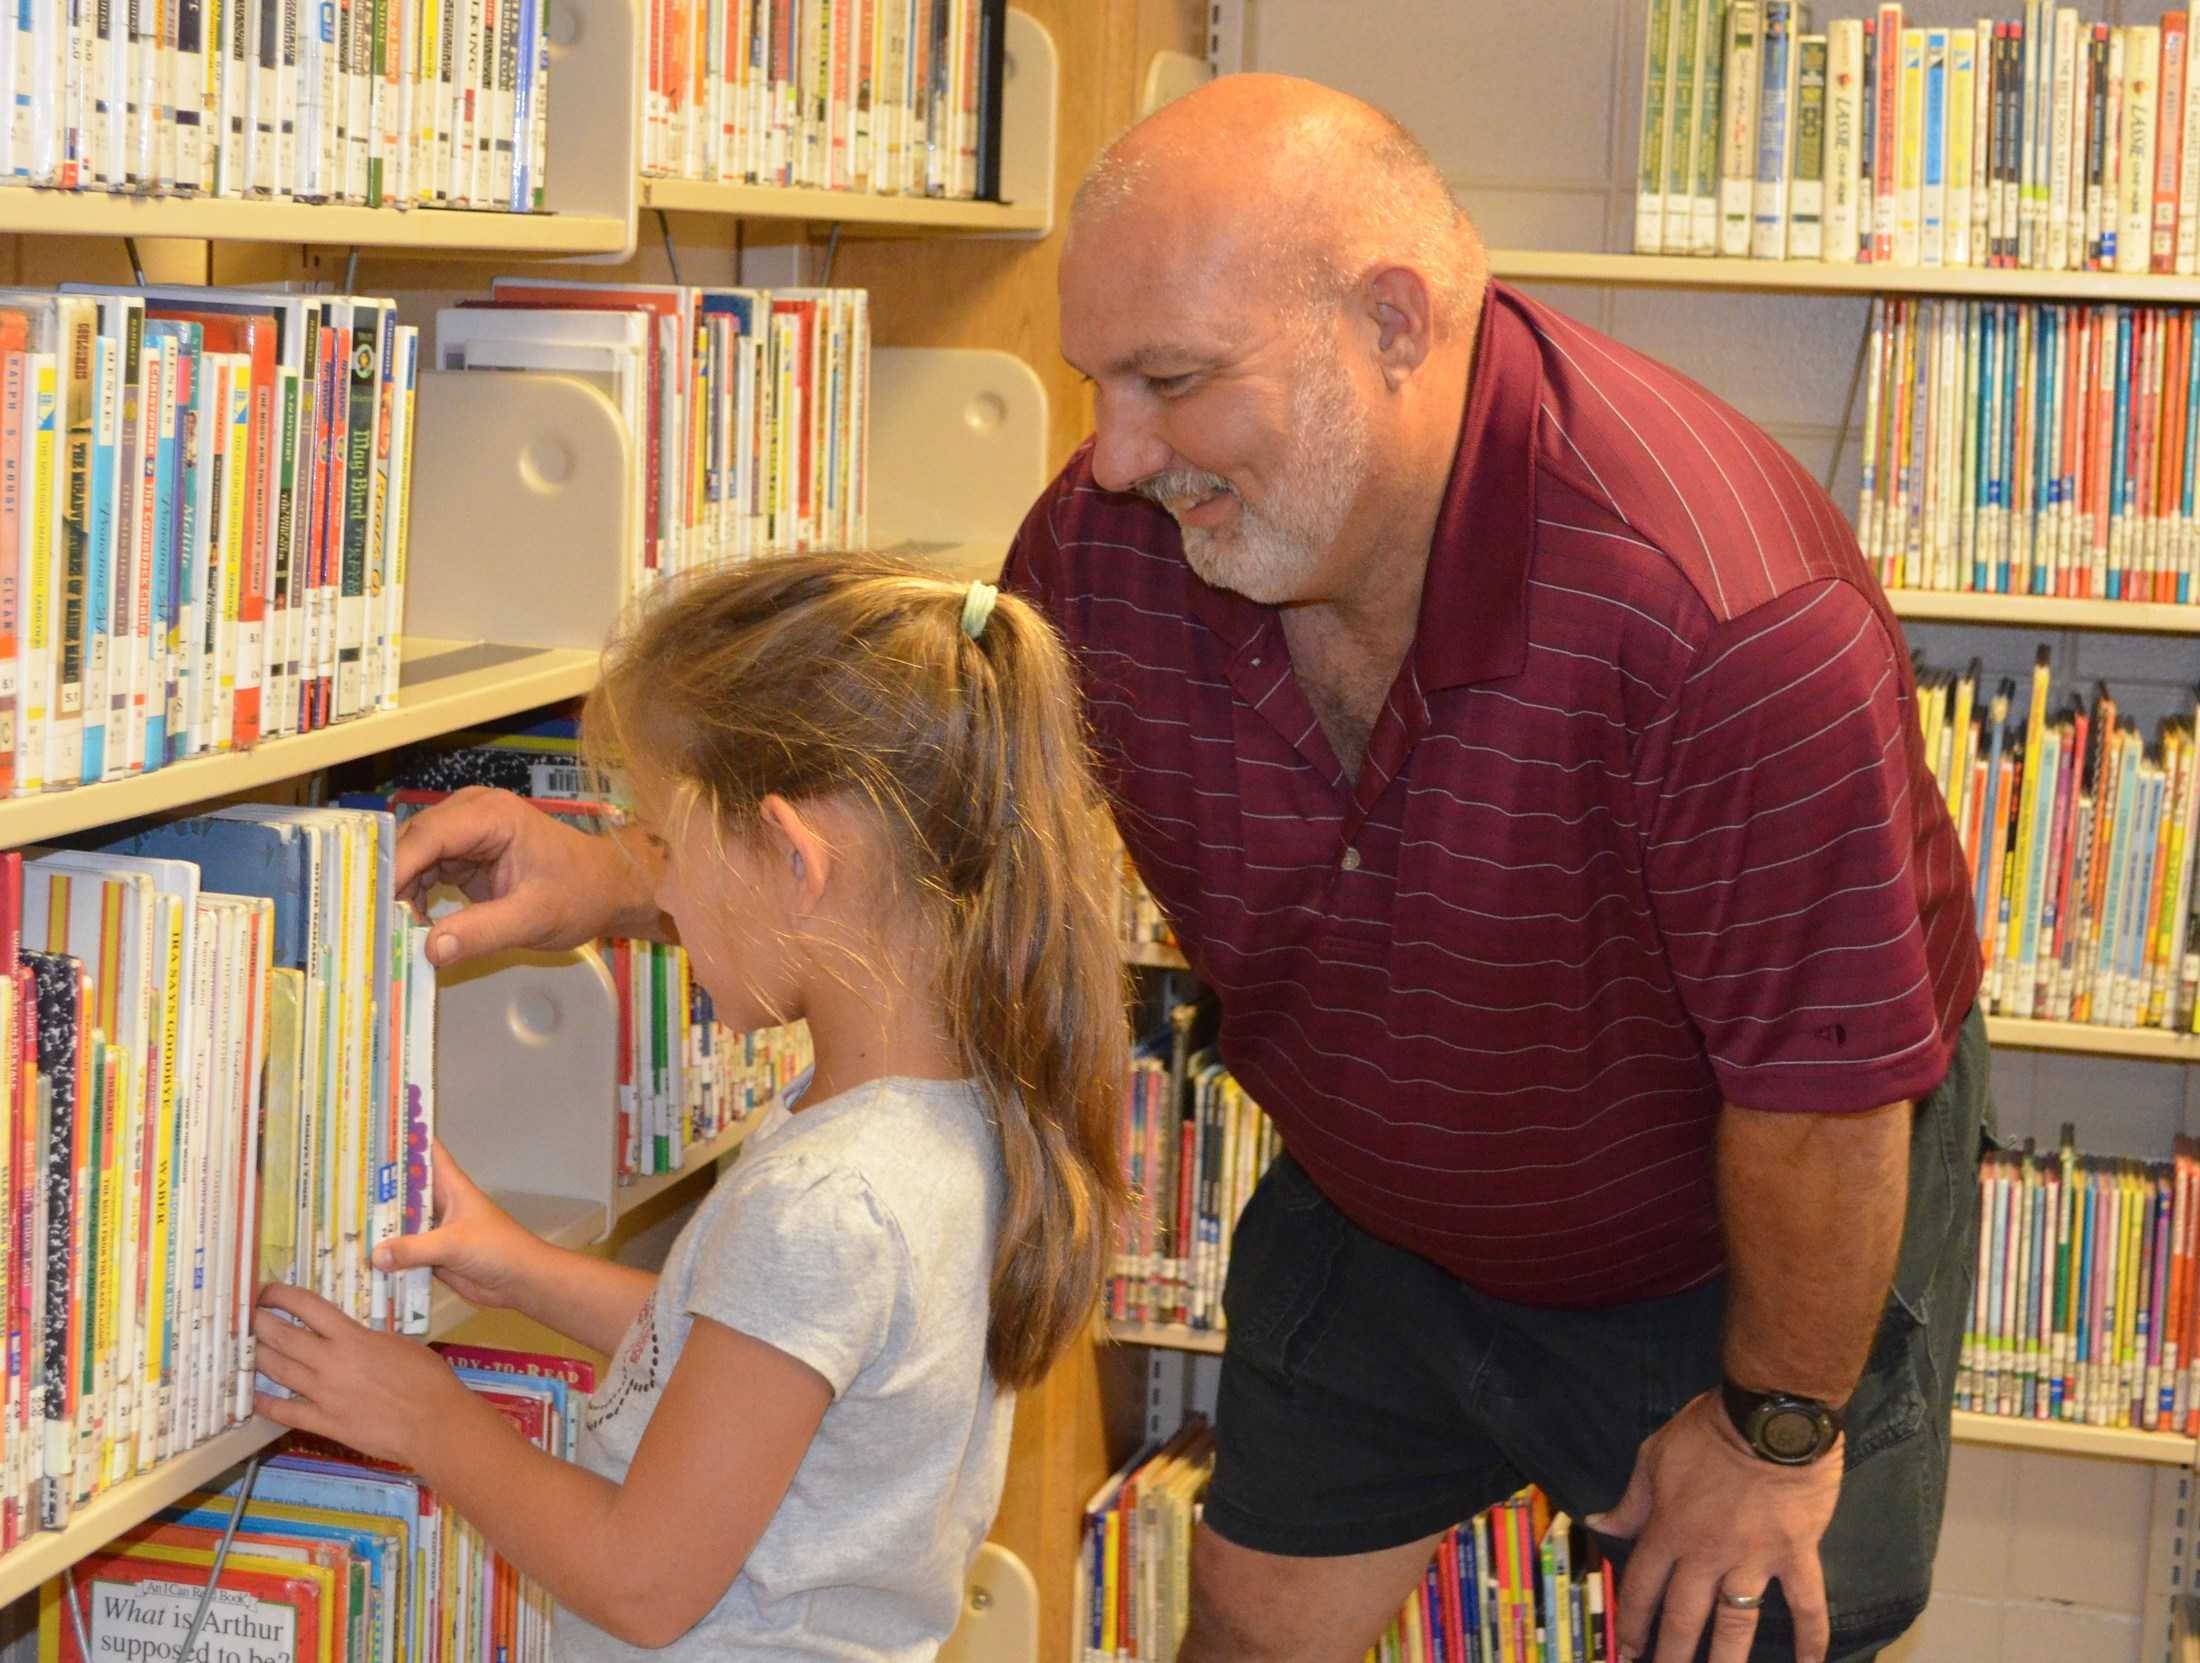 BES student shows grandparent where some of her favorite books are located in the library.